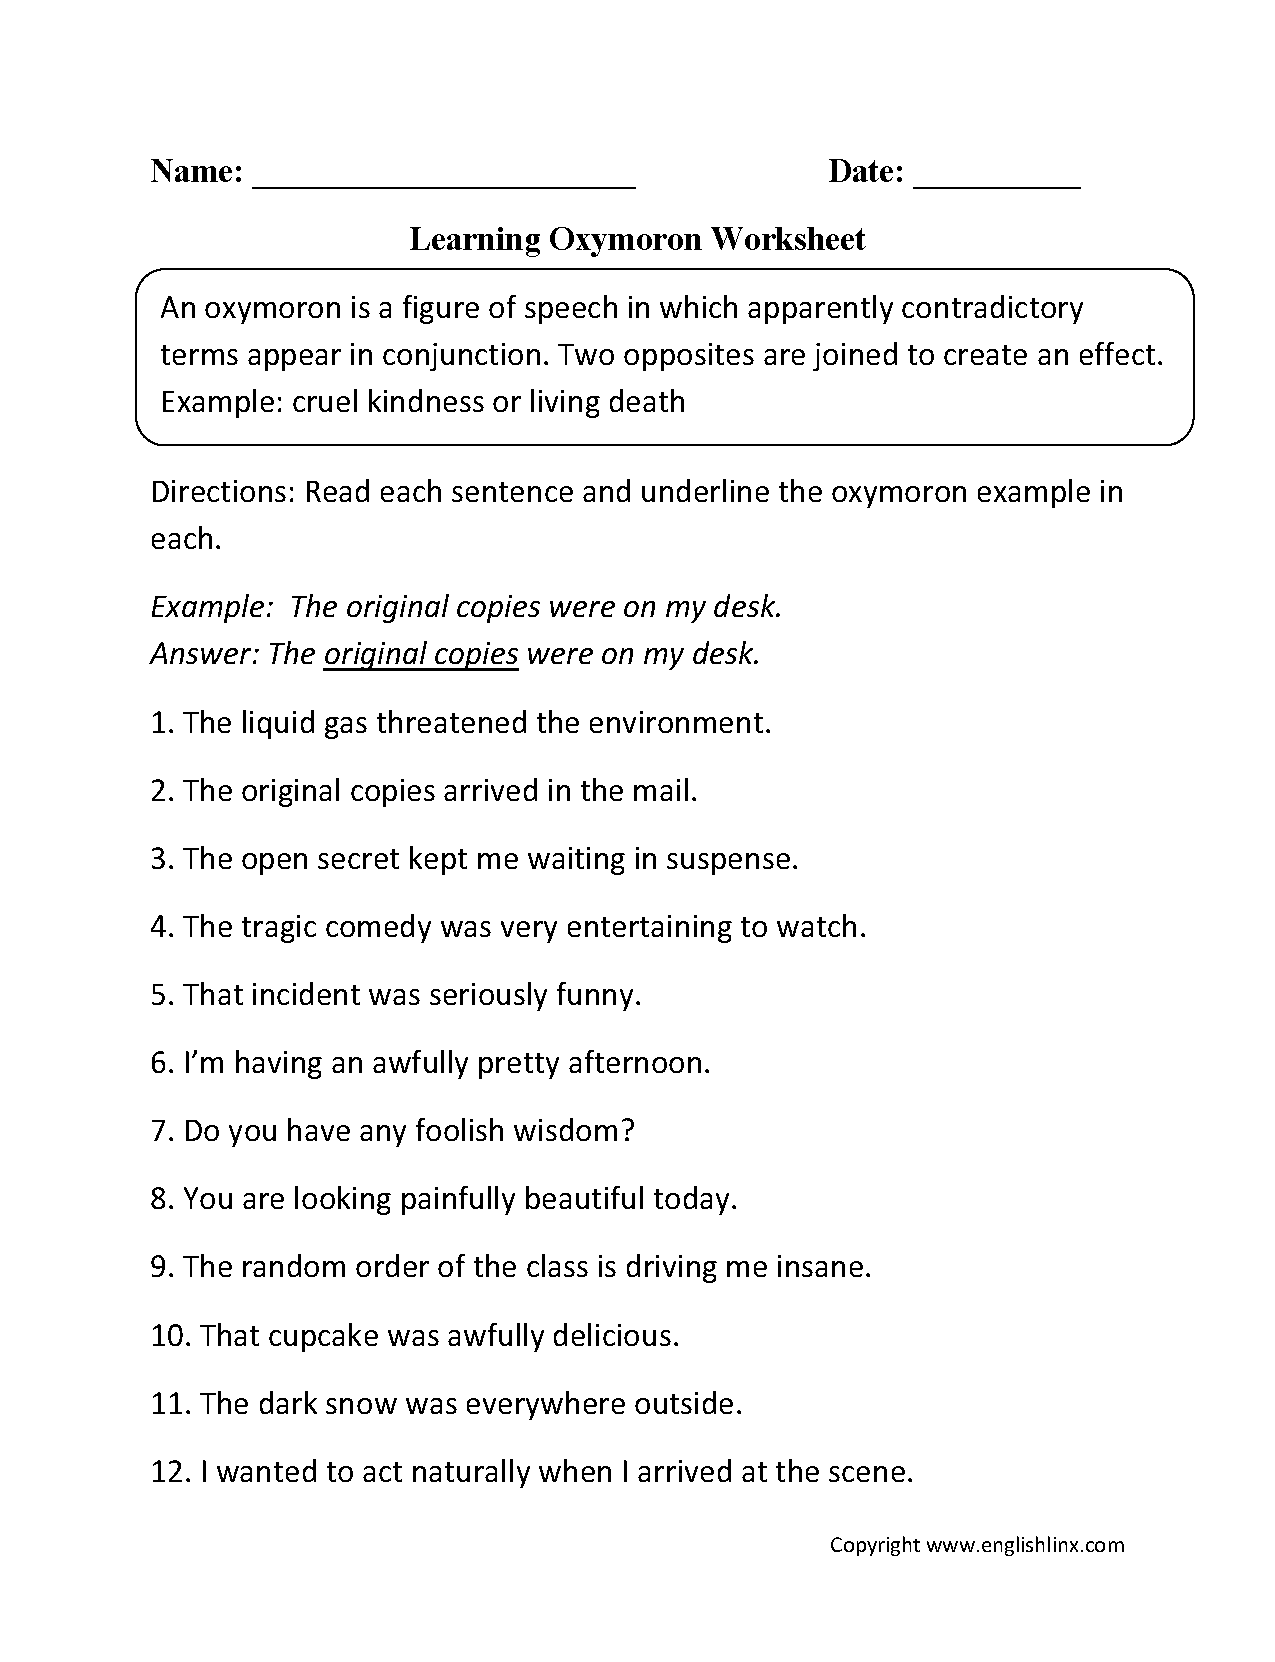 Worksheets Onomatopoeia Worksheet oxymoron figurative language worksheets englishlinx com board worksheets